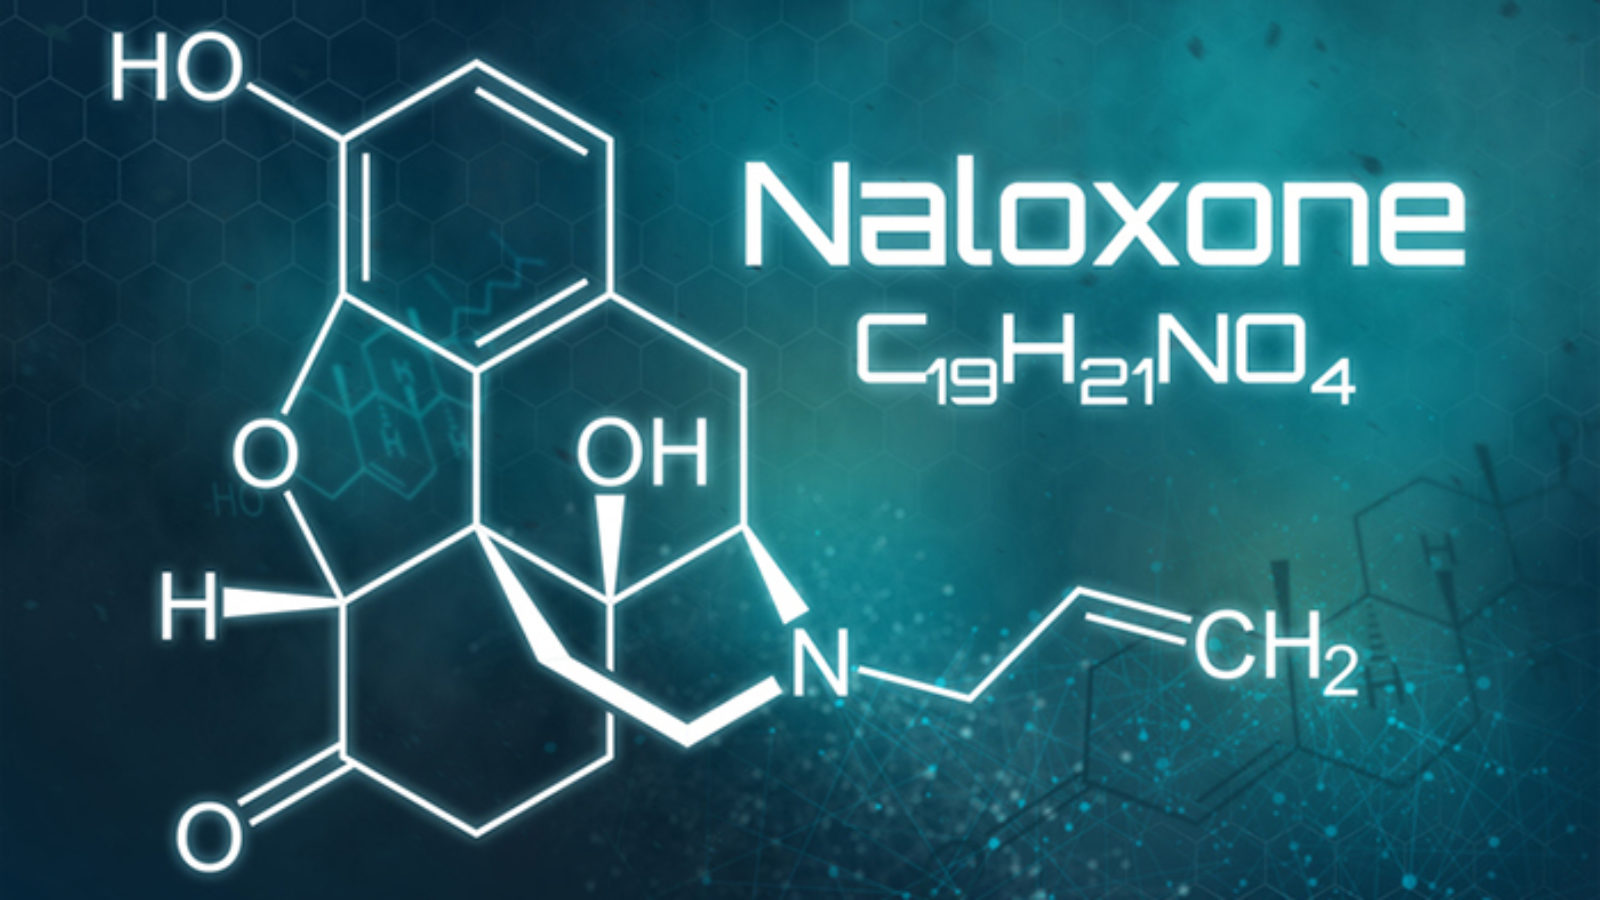 Illustration of the chemical formula for Naloxone, the antidote for opioid overdose